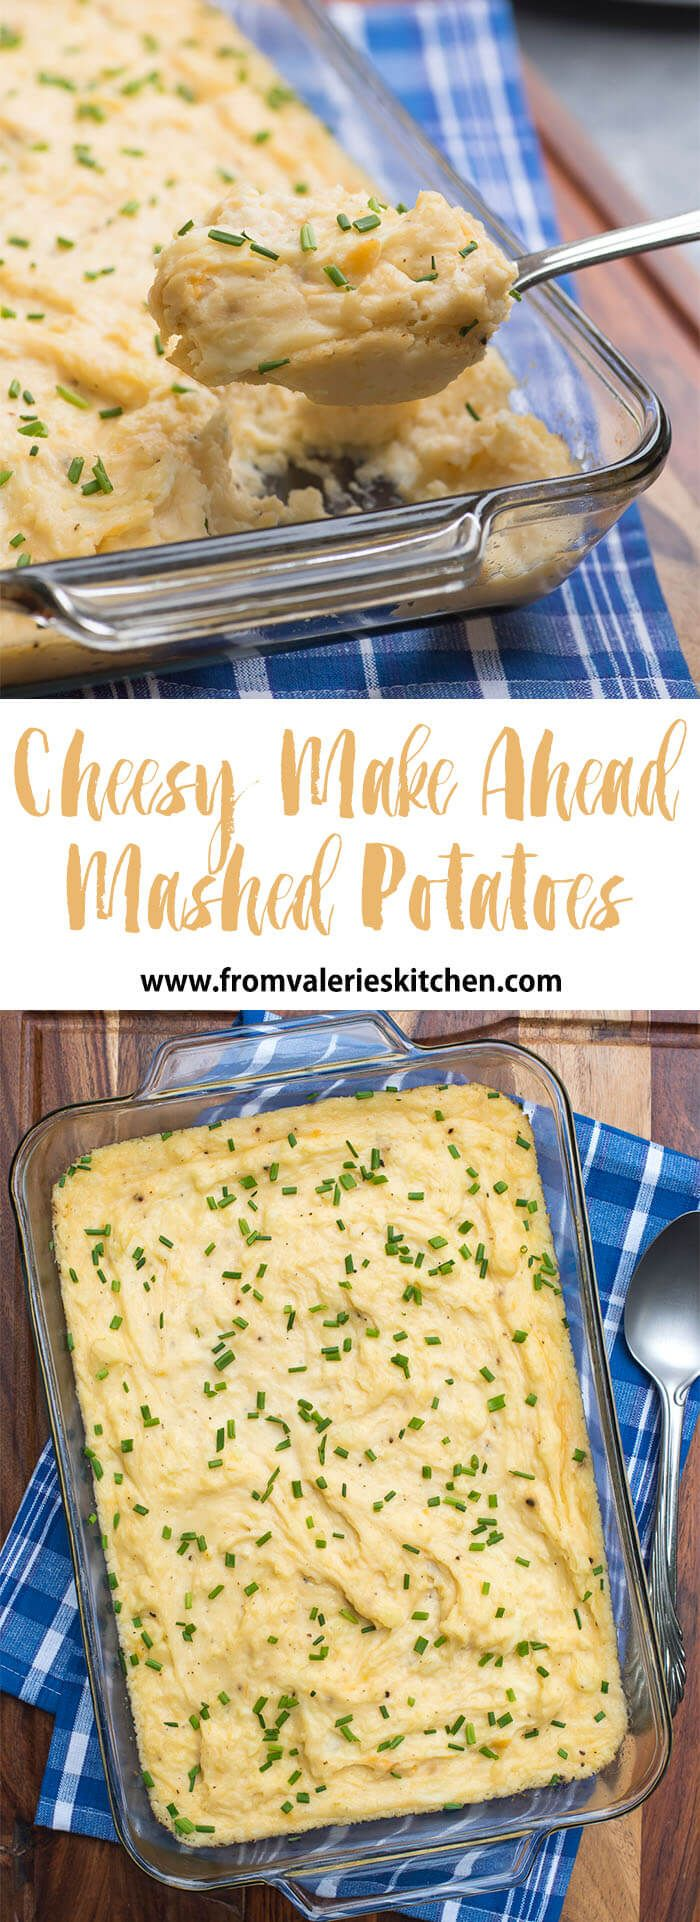 These Cheesy Make Ahead Mashed Potatoes are a fabulous way to make your holiday meal prep a whole lot easier. Make them a day or two in advance and check them off your list!